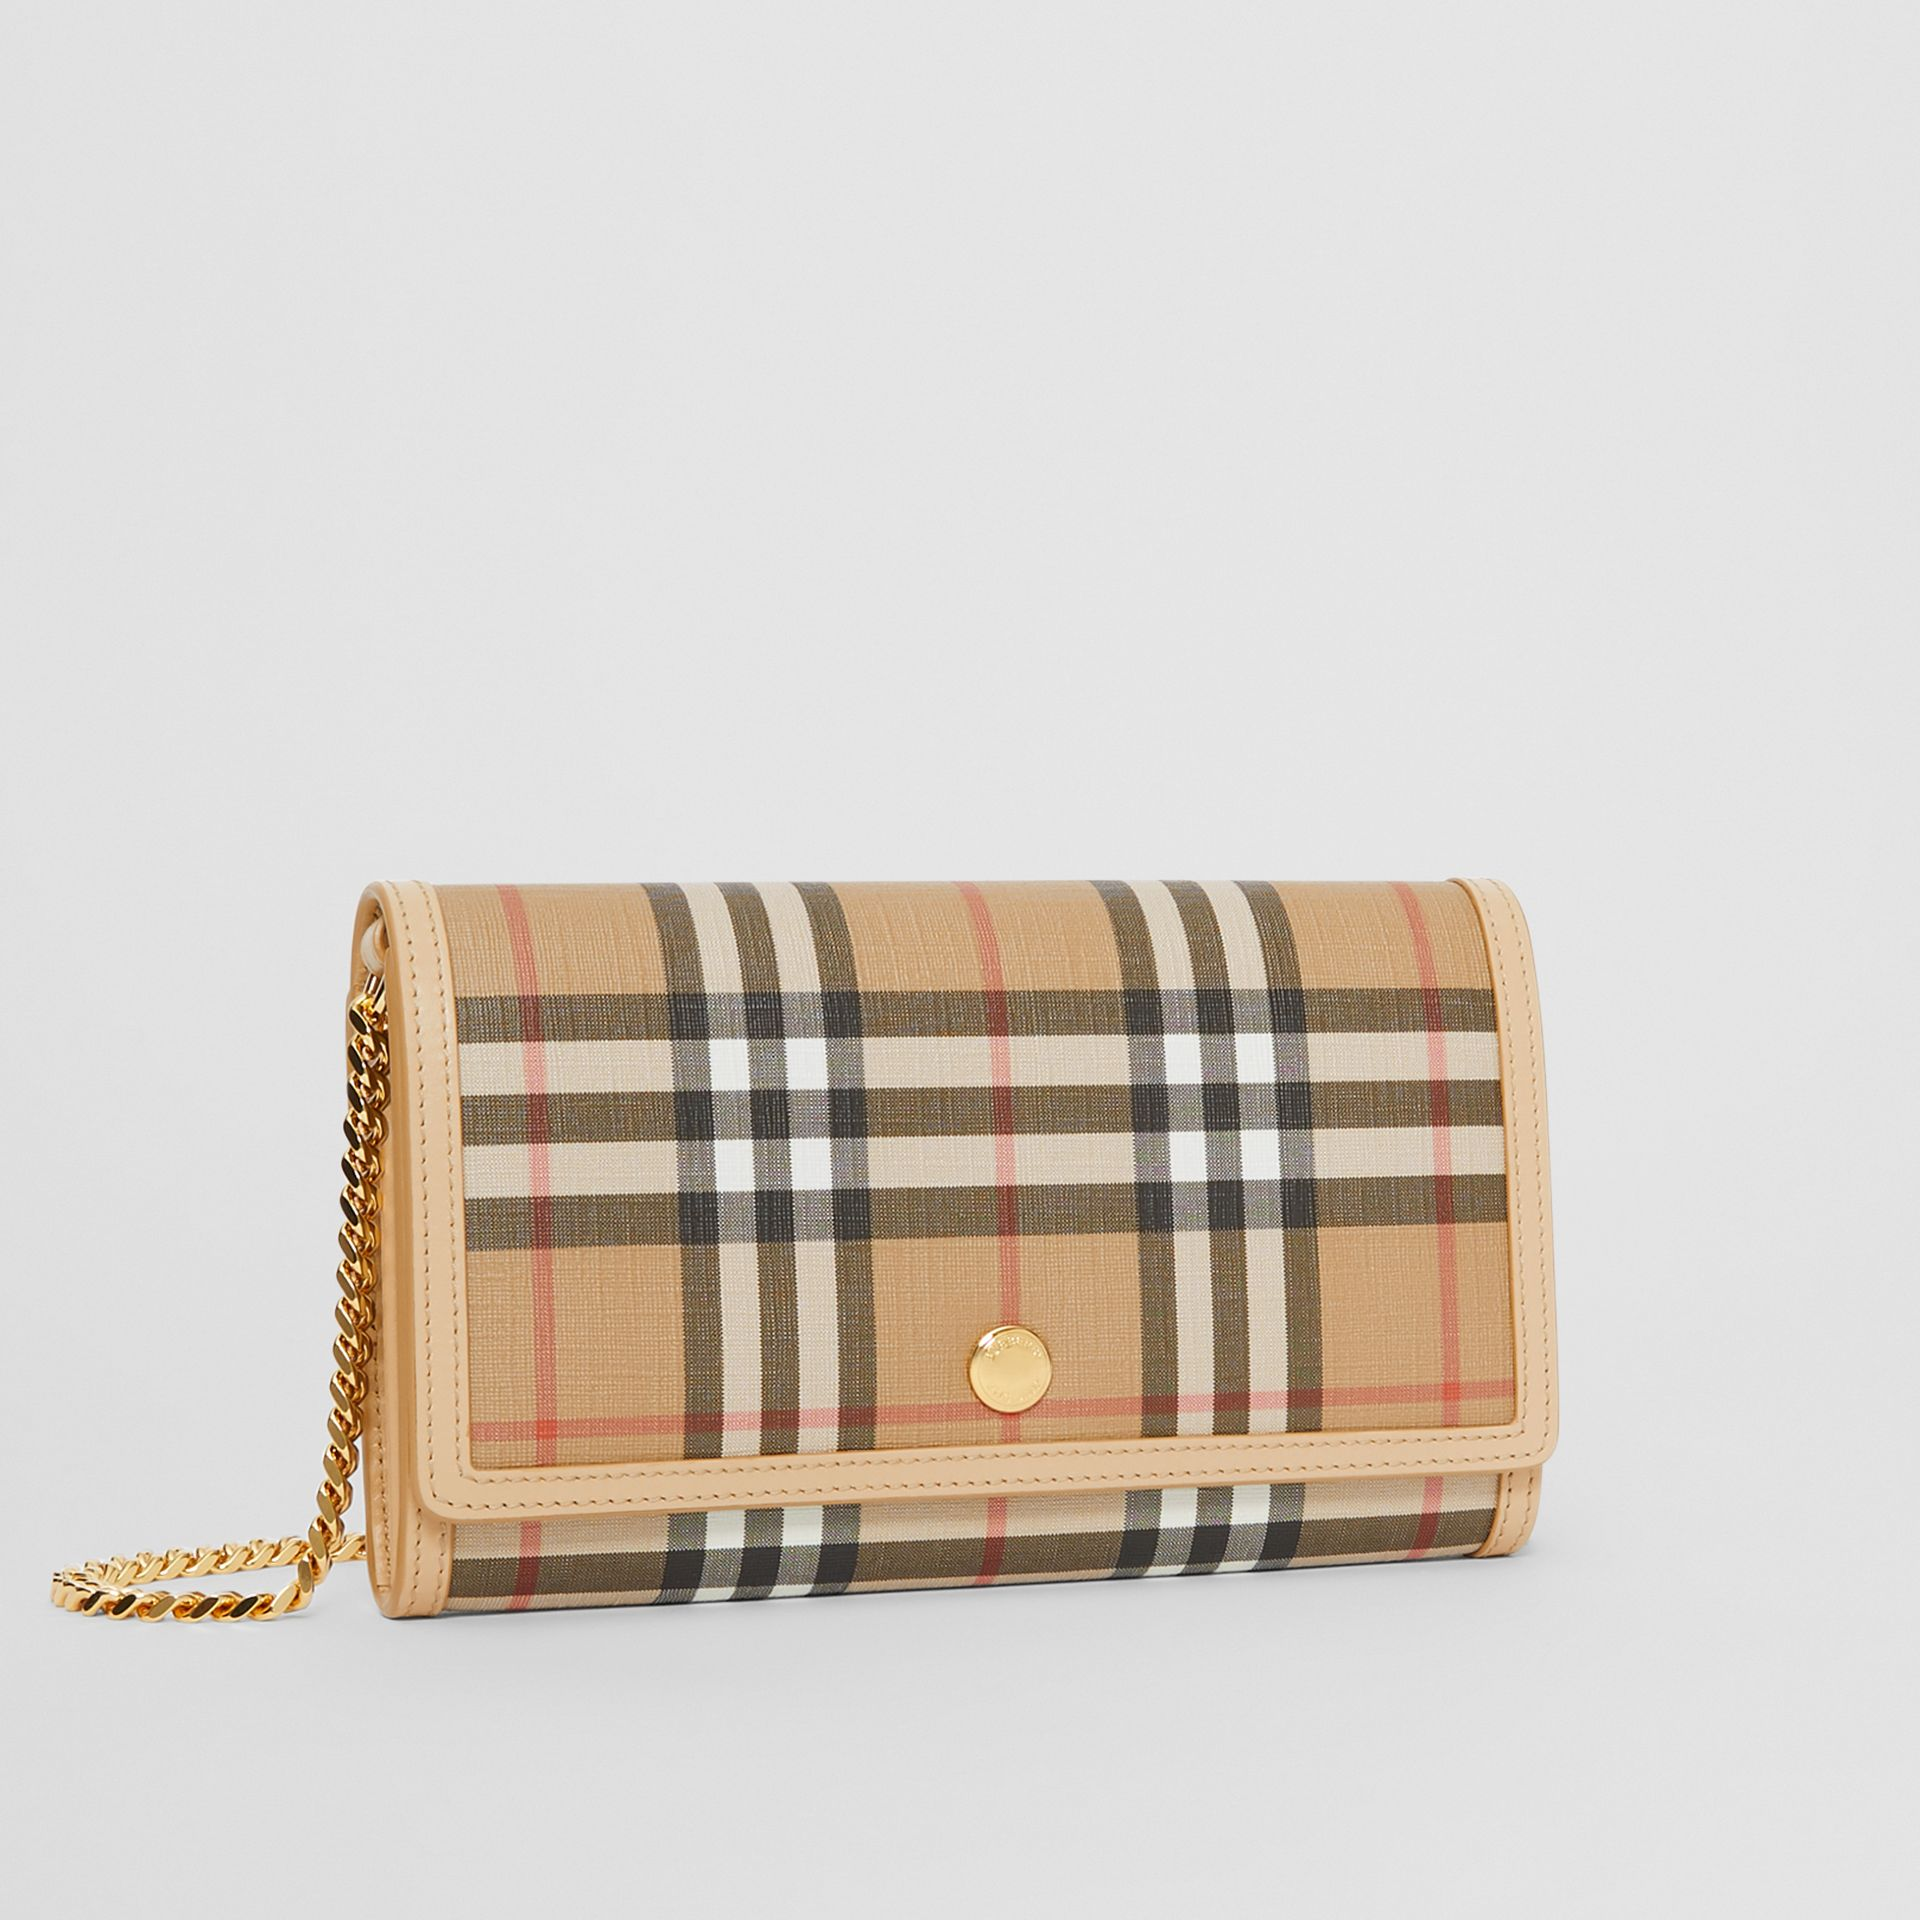 Vintage Check E-canvas Wallet with Detachable Strap in Beige - Women | Burberry - gallery image 6